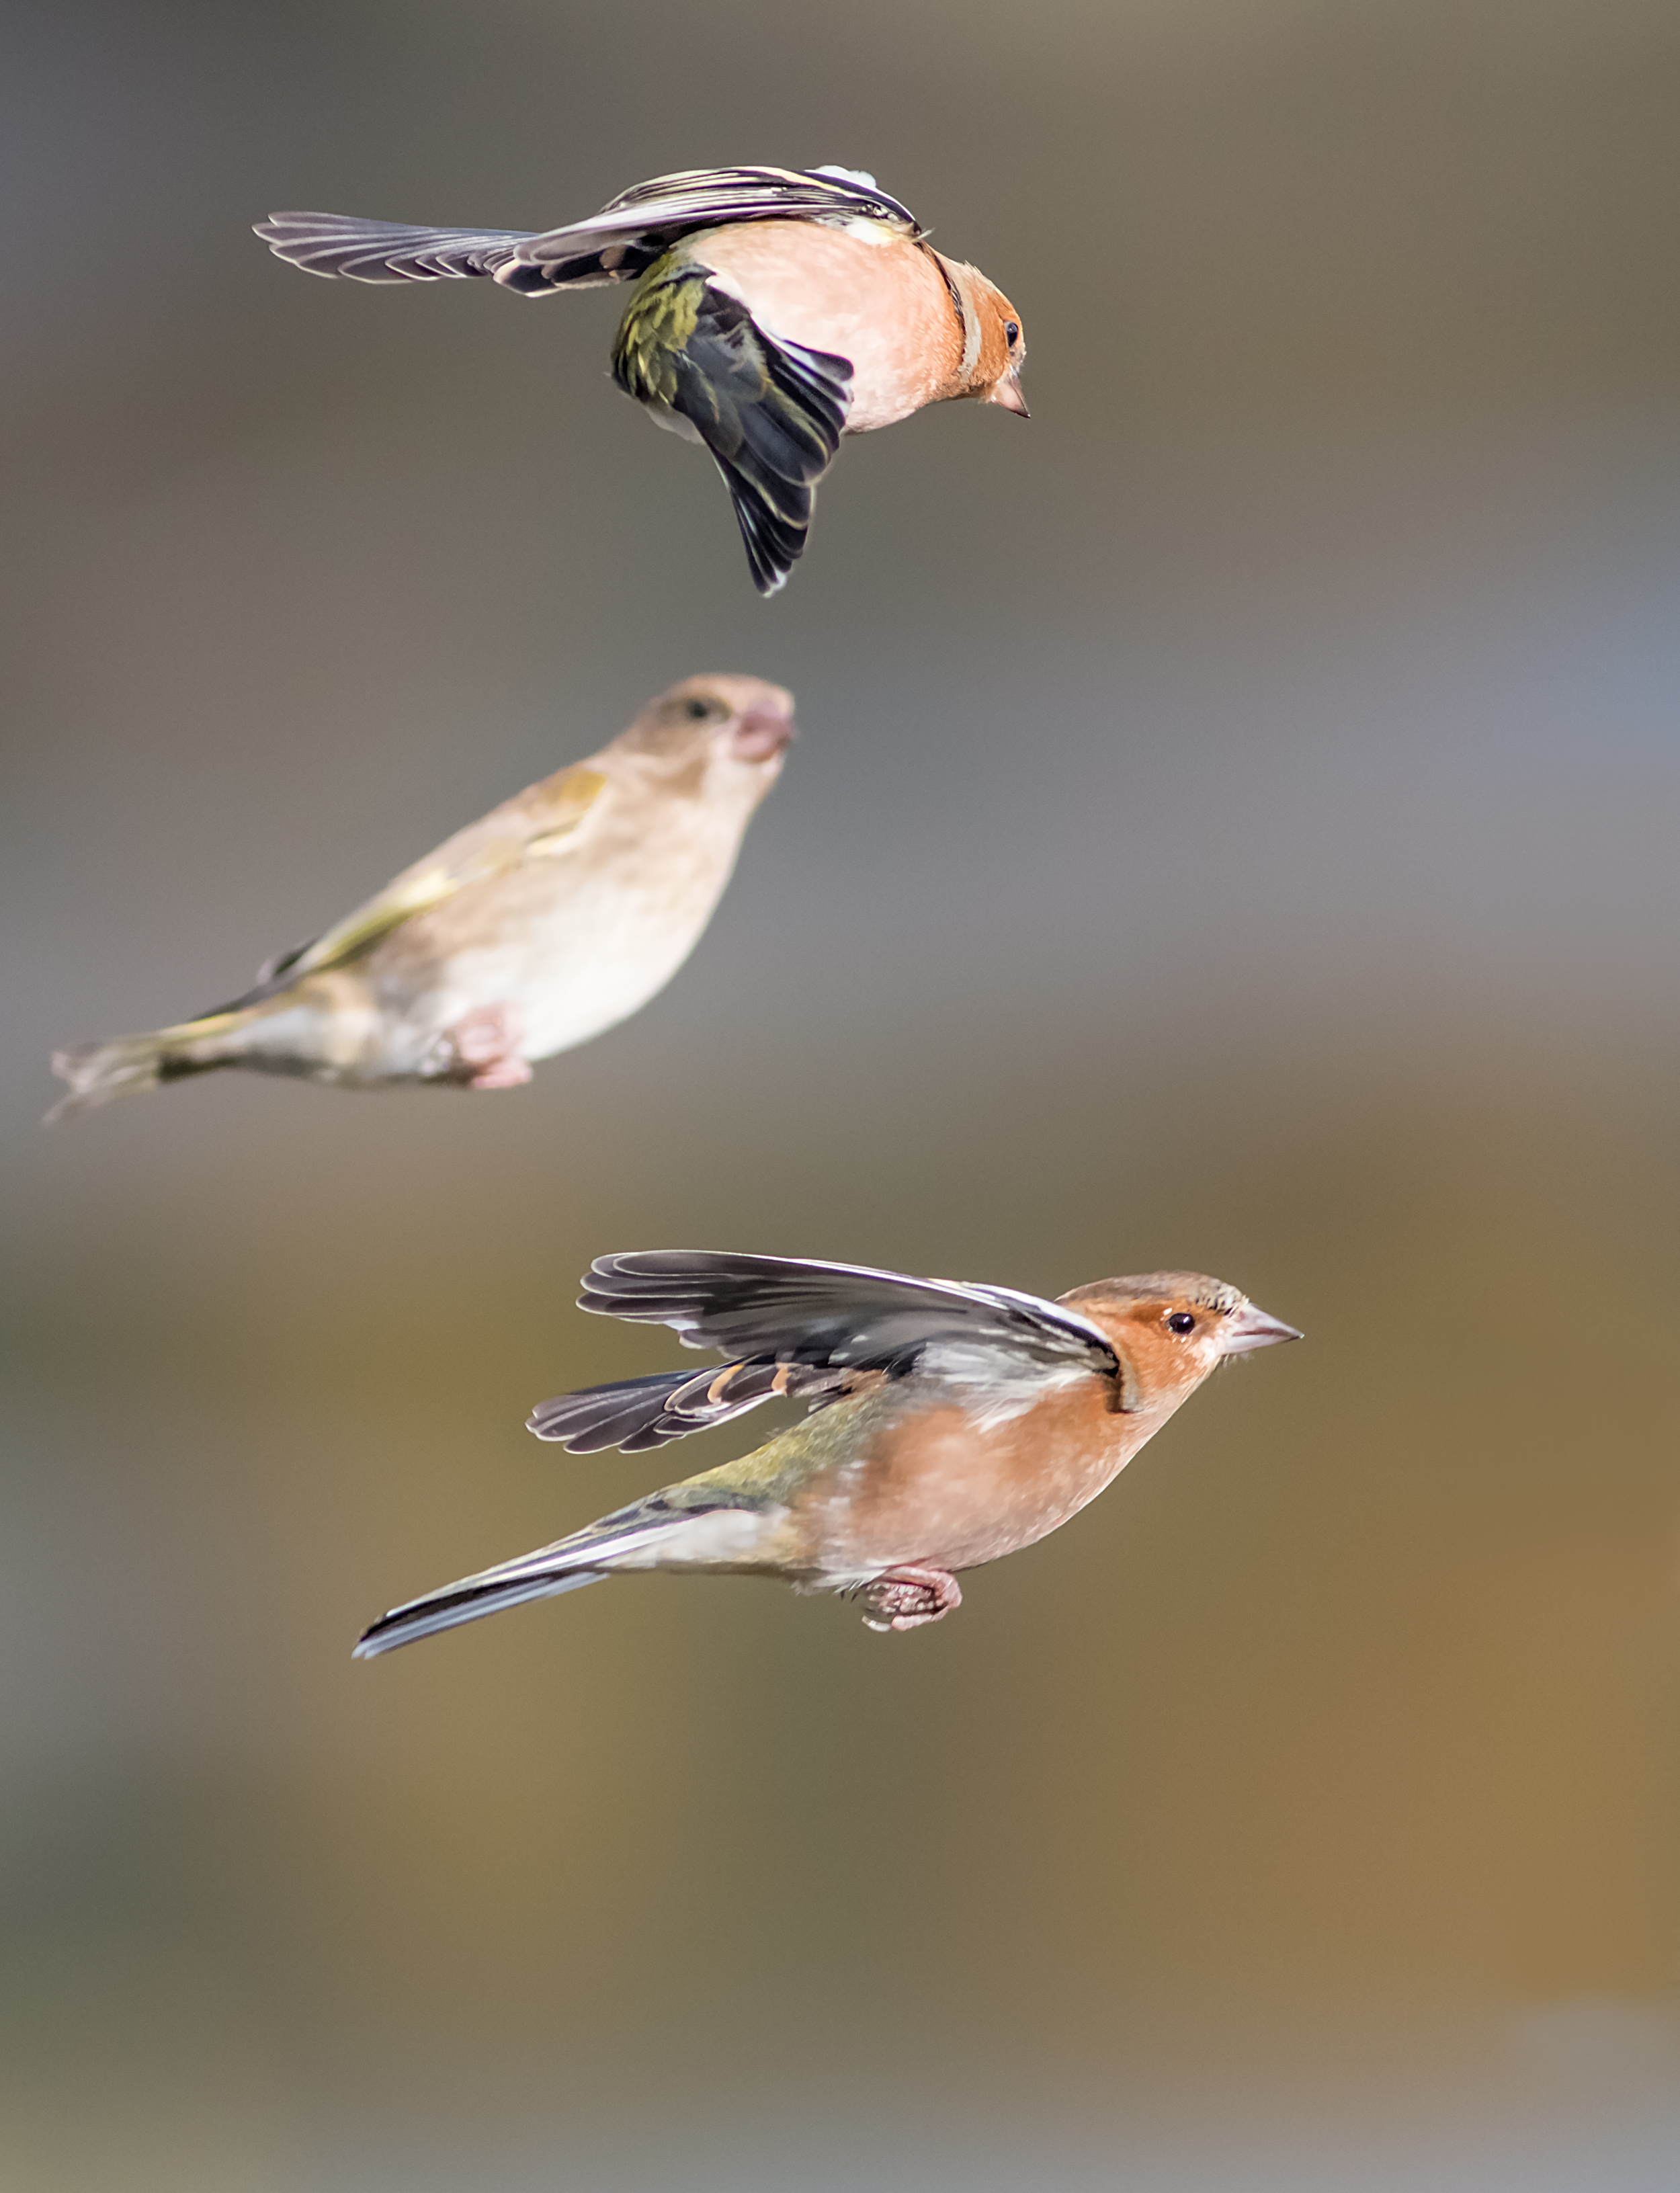 Some acrobatic Chaffinches